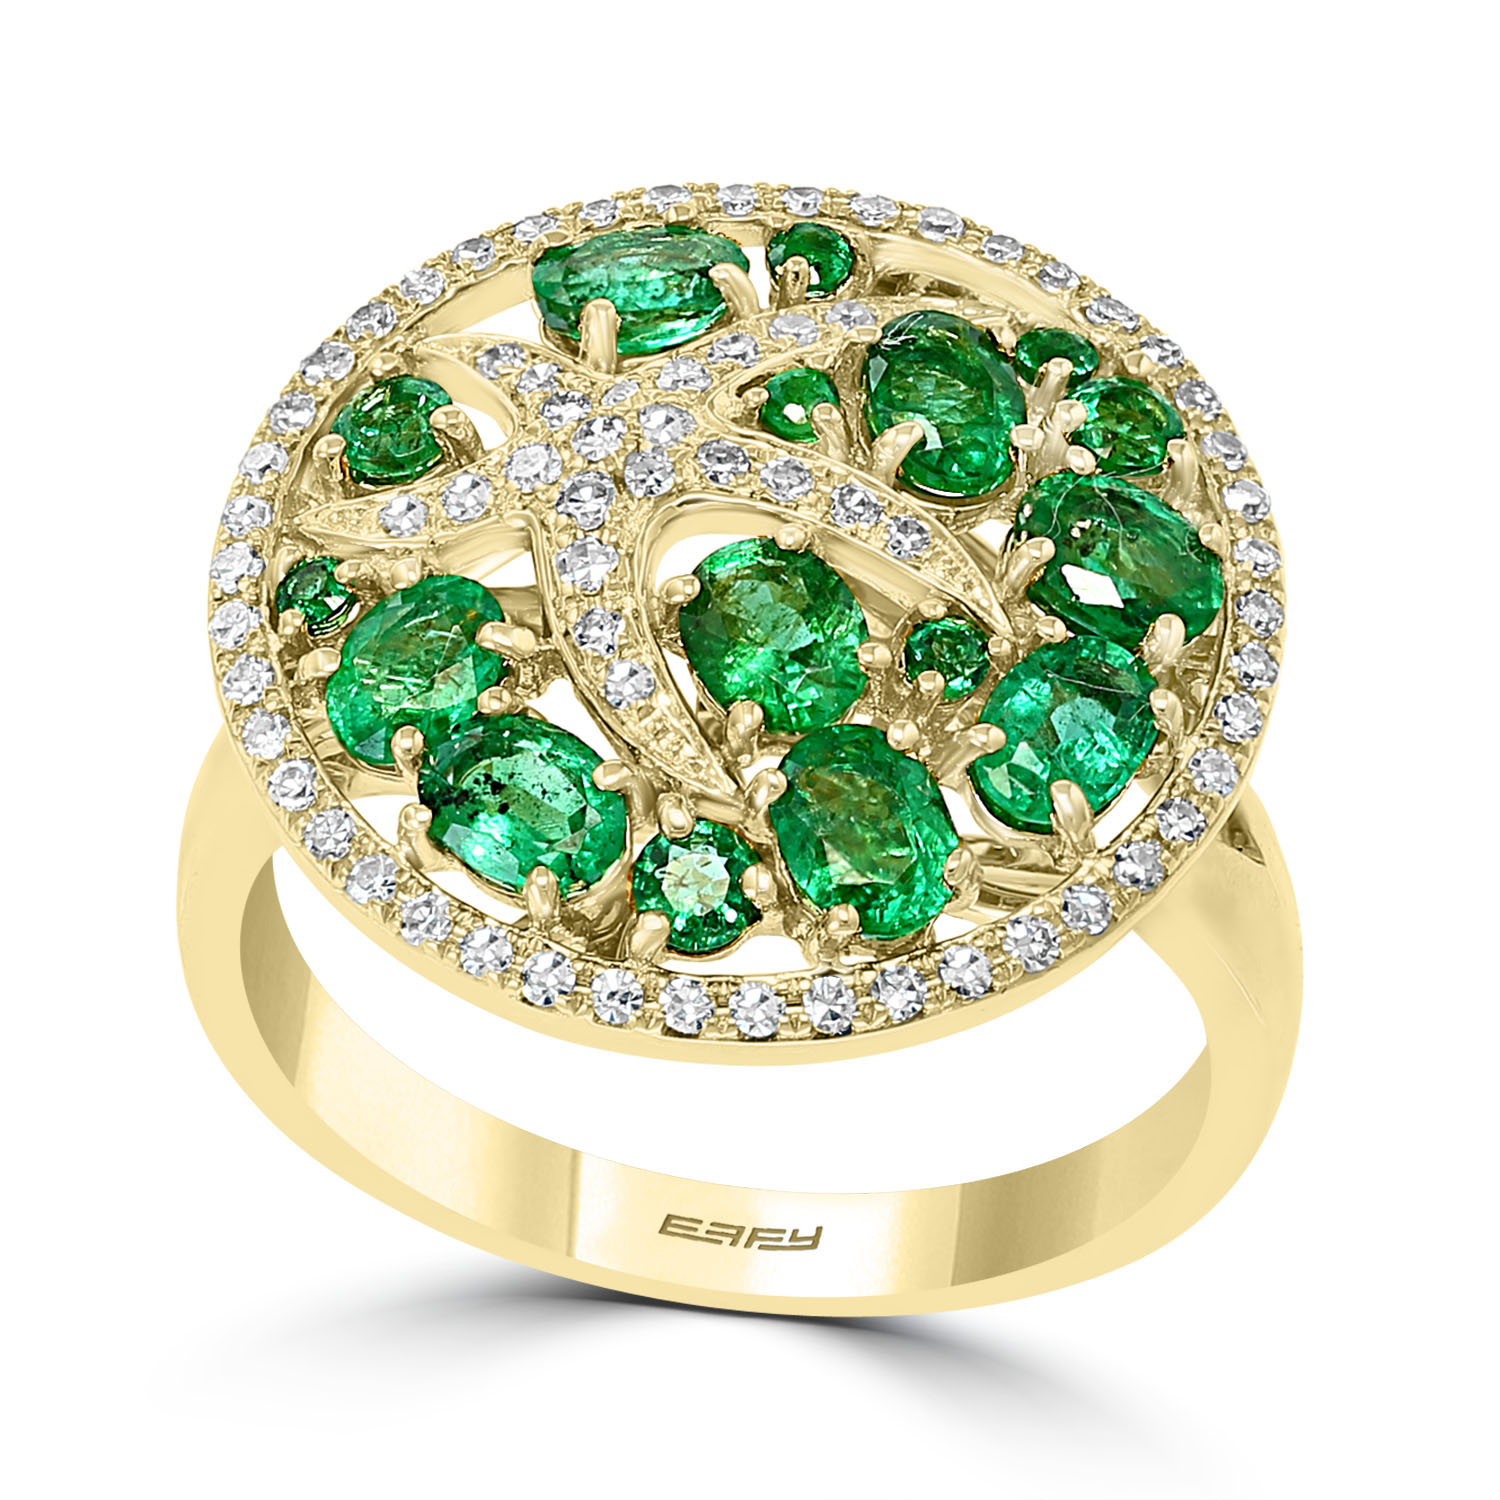 14K Yellow Gold Emerald & Diamond Ring